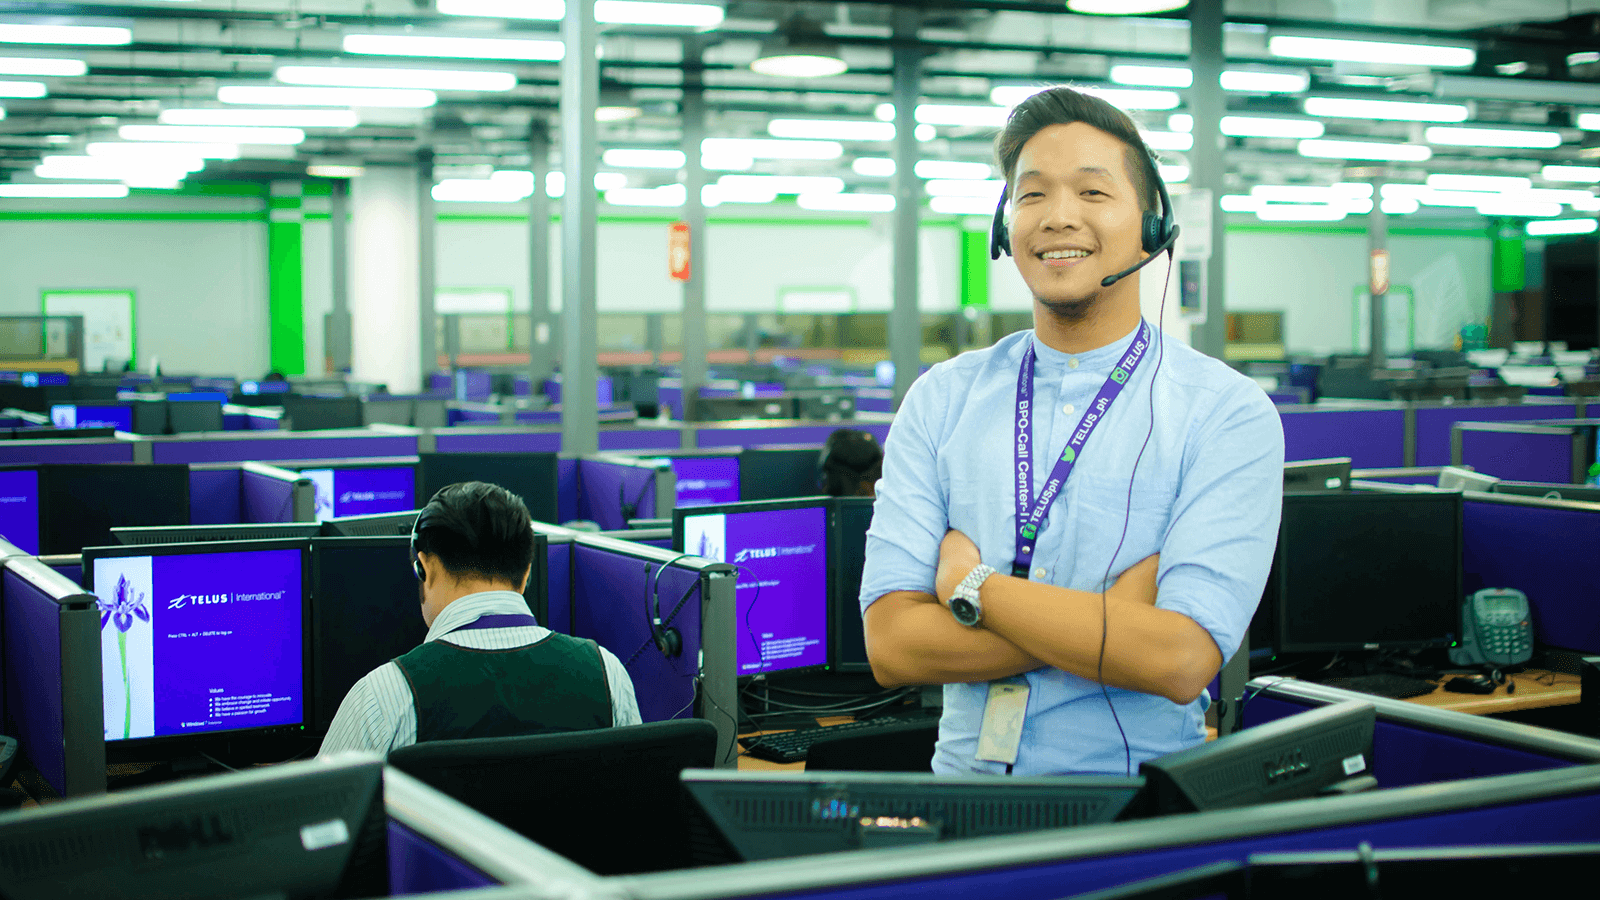 Call centre employee standing by his desk